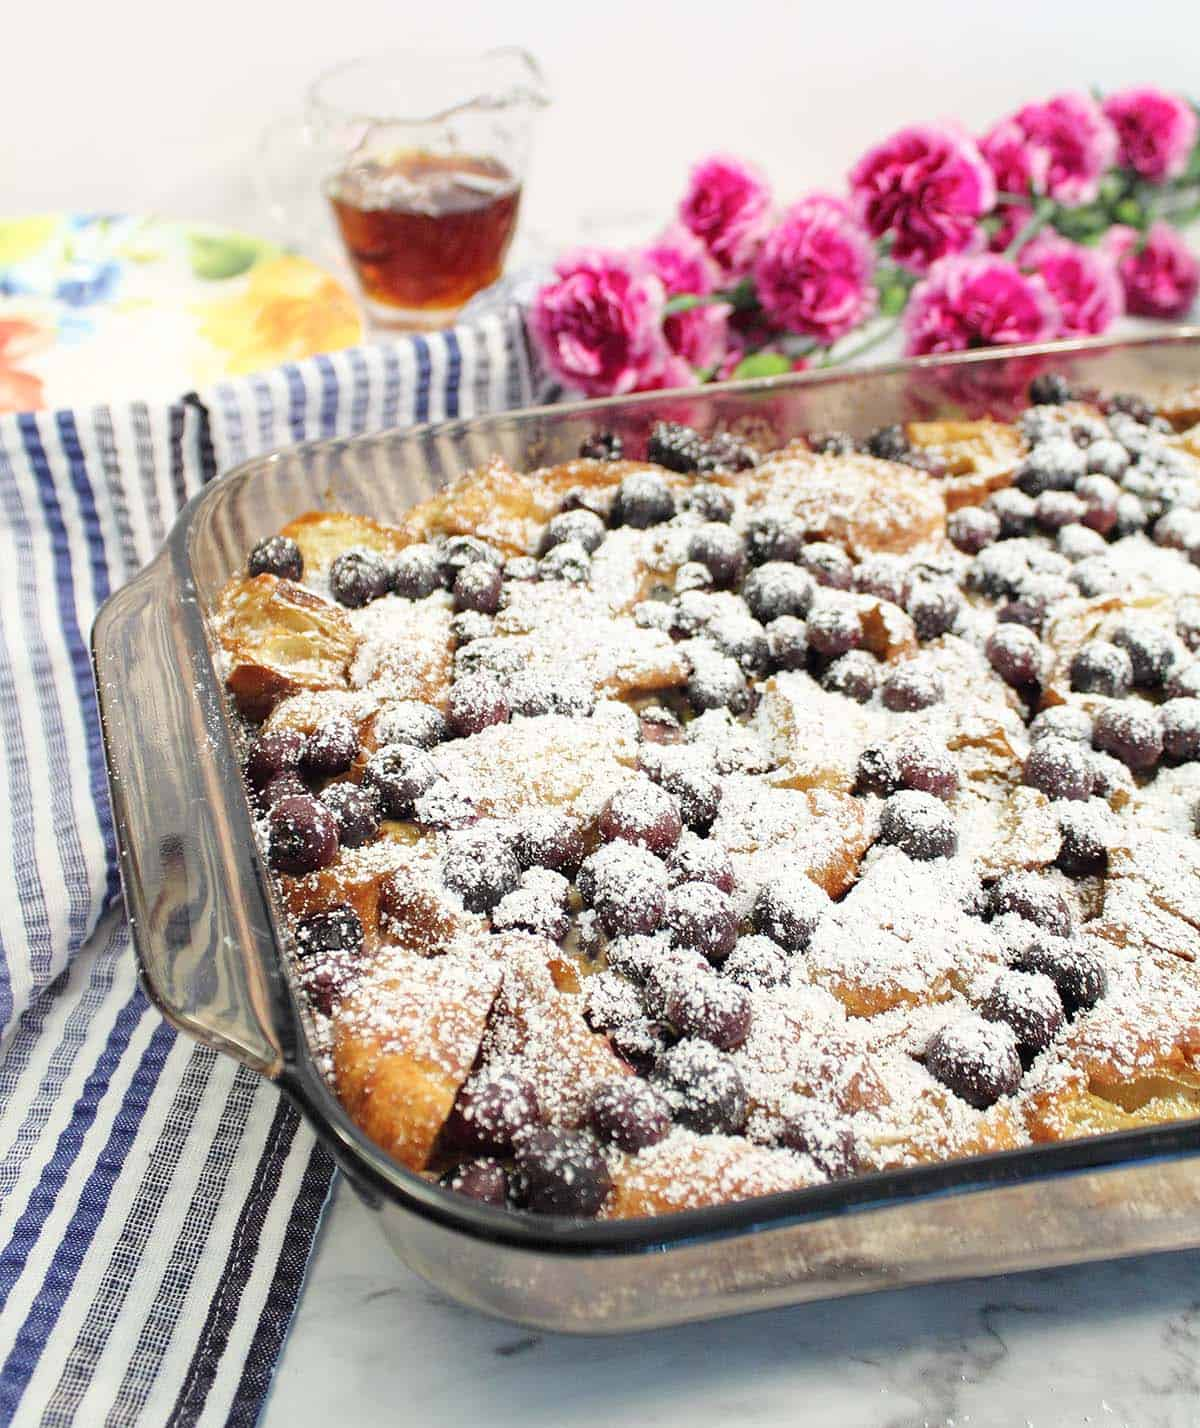 Overnight Blueberry French Toast Bake dusted with confectioner's sugar on white marble table with red flowers and maple syrup in background.